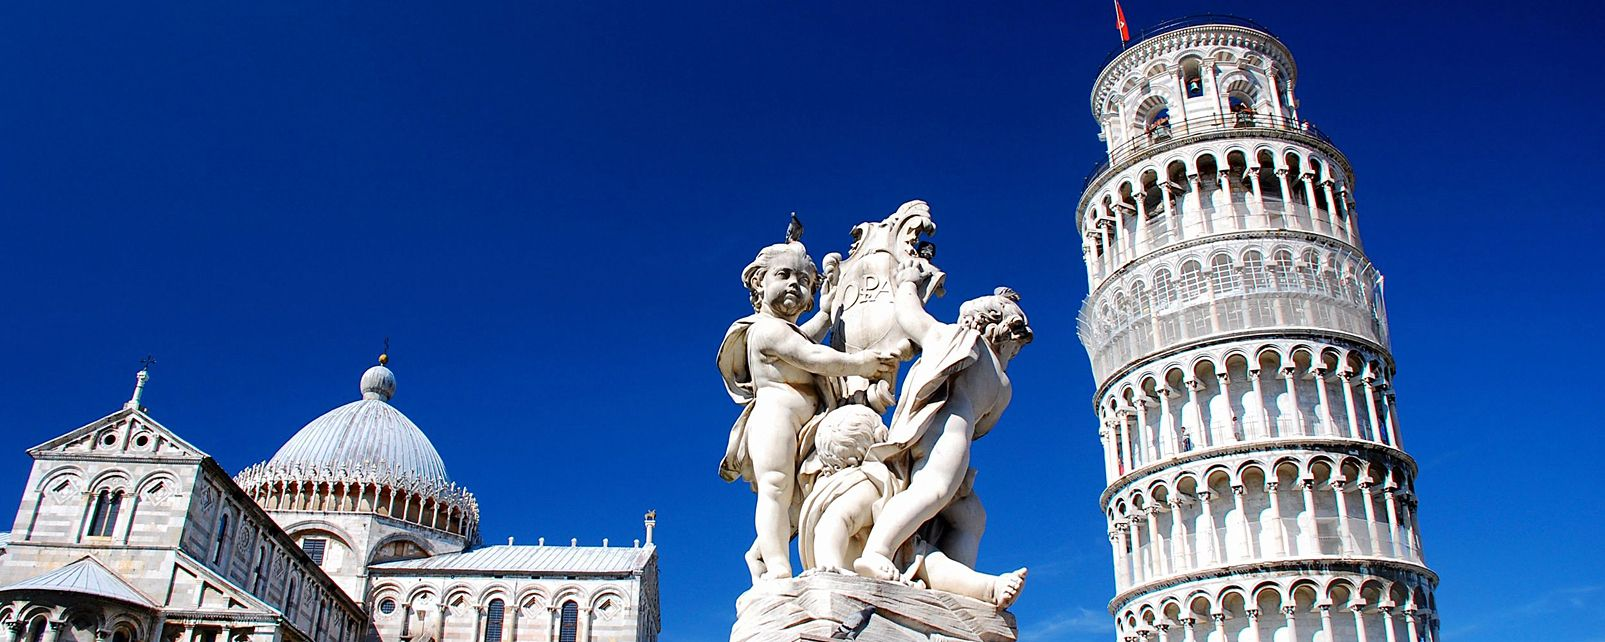 Monuments of Pisa , Italy